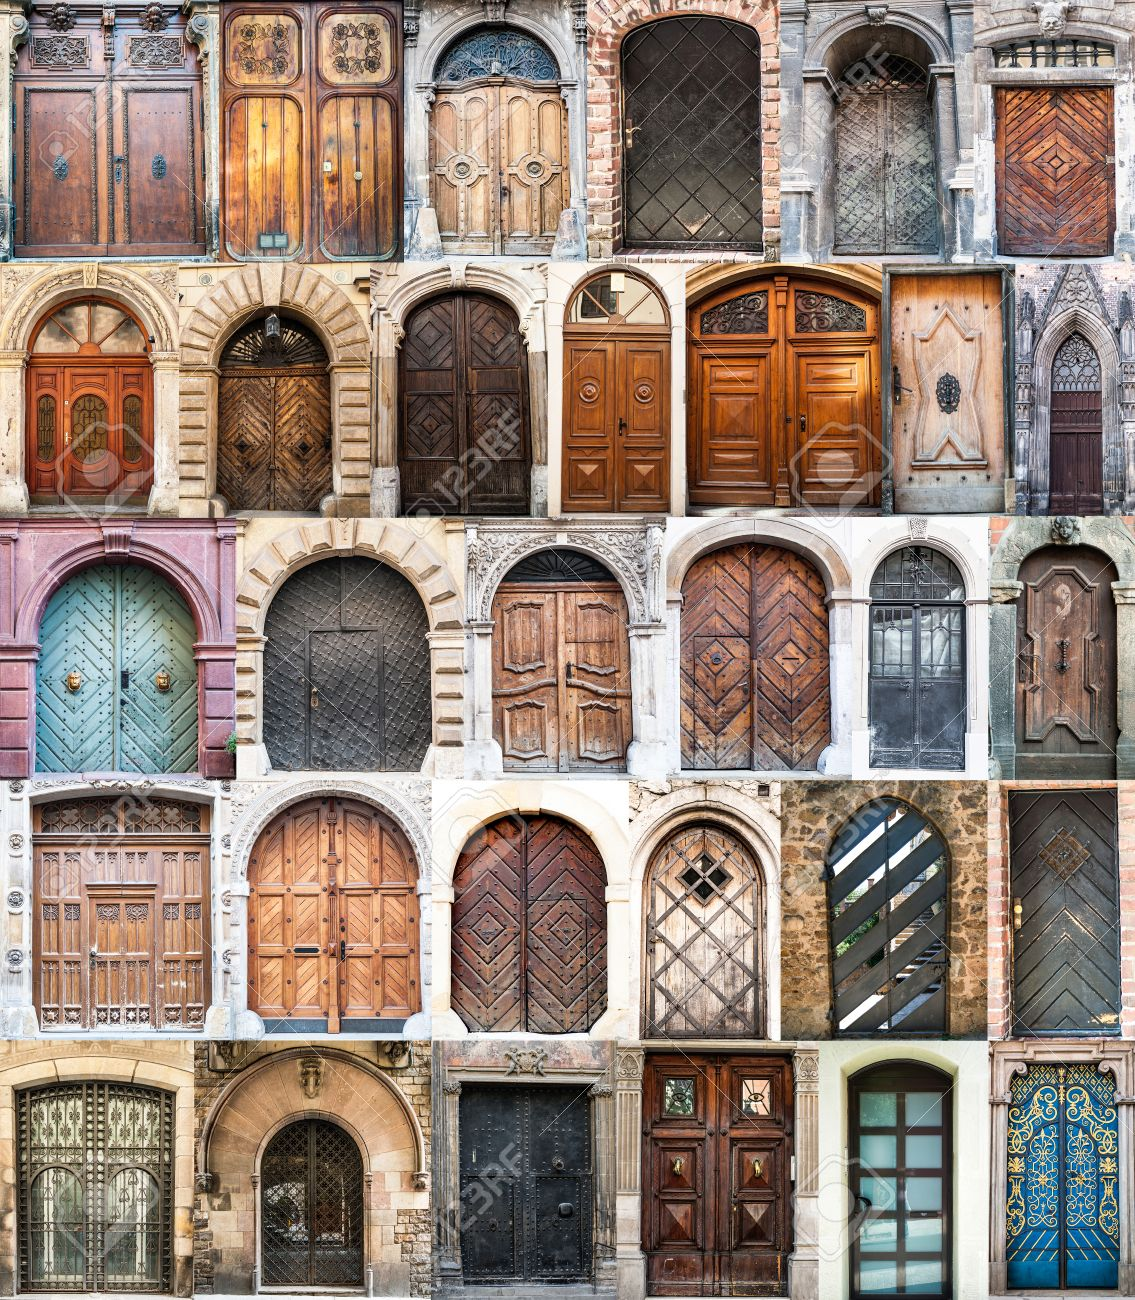 photo collage of old doors Gothic quarter in Barcelona Spain Stock Photo - 22867061 & Photo Collage Of Old Doors Gothic Quarter In Barcelona Spain Stock ... Pezcame.Com